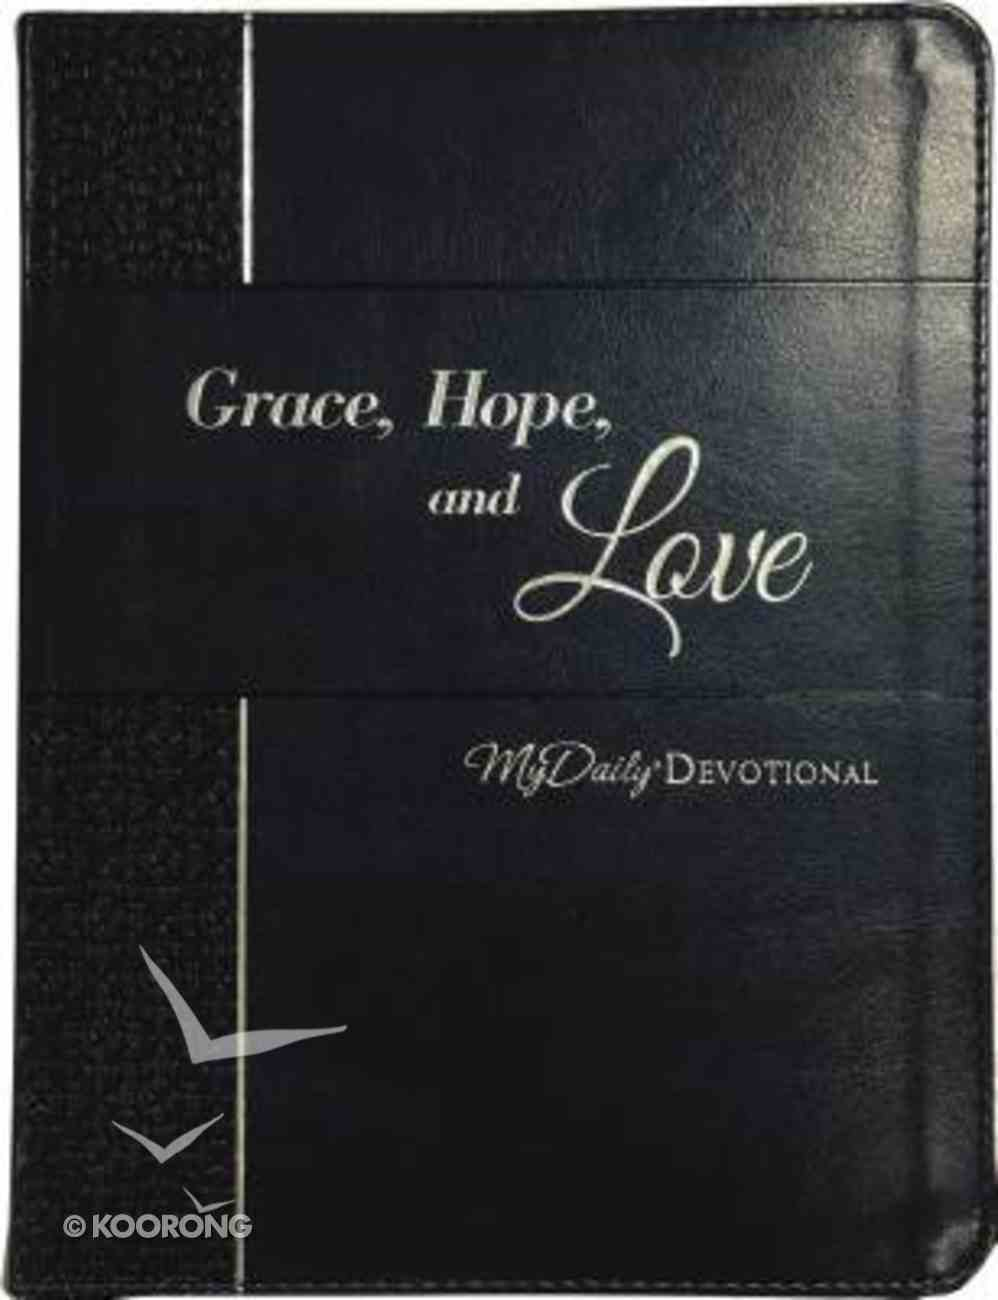 Mydaily Devotional: Grace, Hope, and Love (365 Daily Devotions Series) Imitation Leather